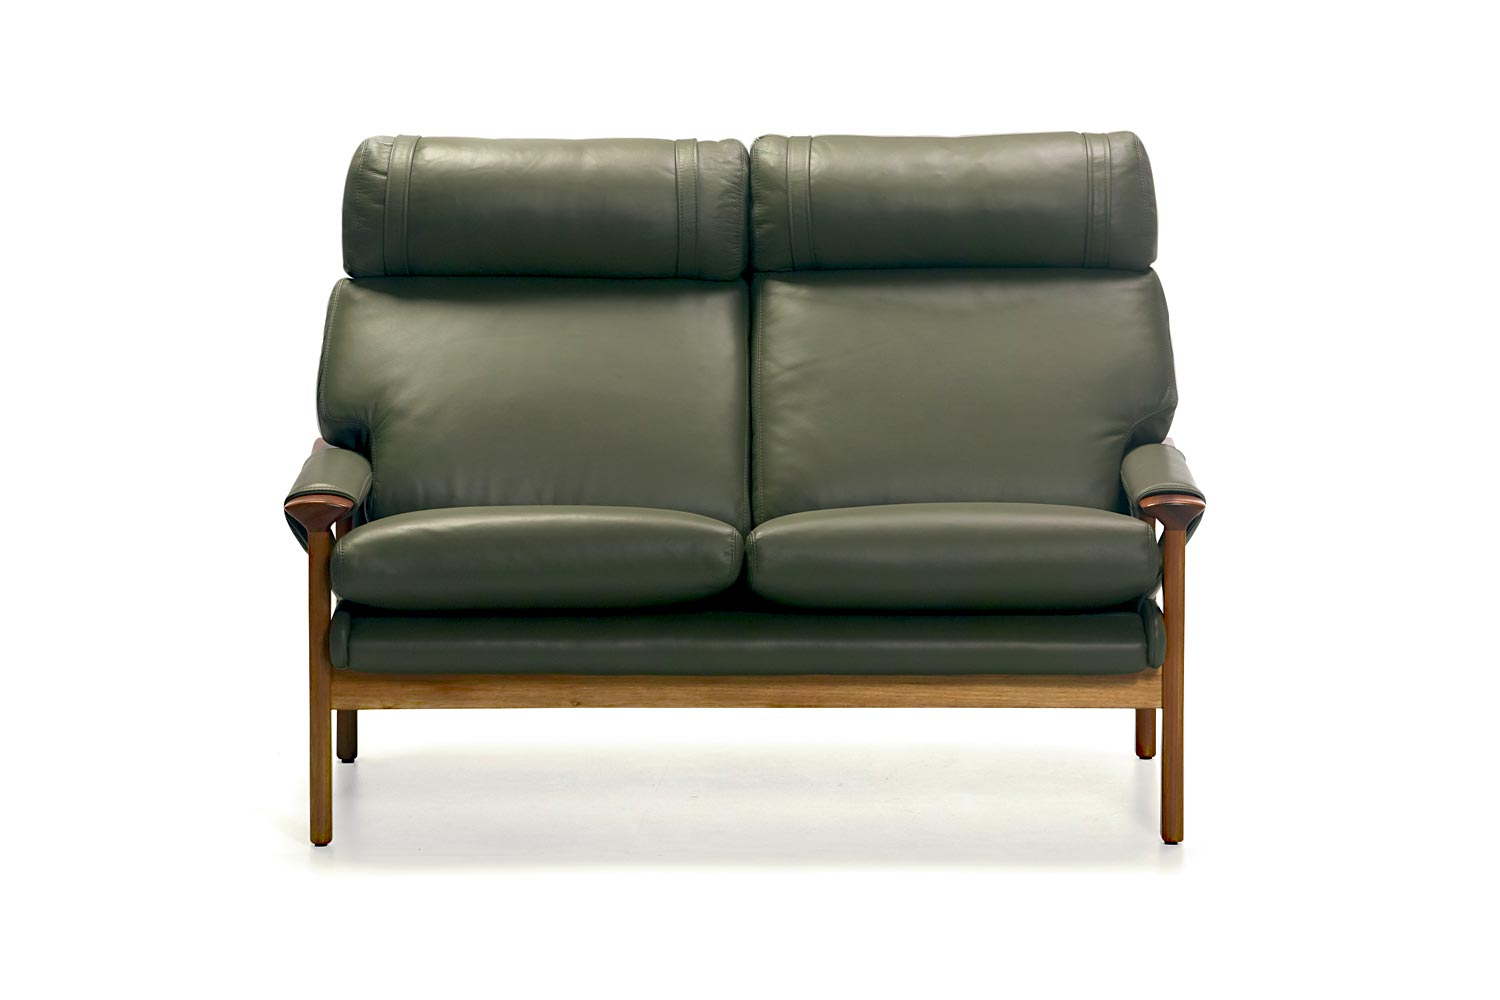 T21 3 Seater Tessa Furniture